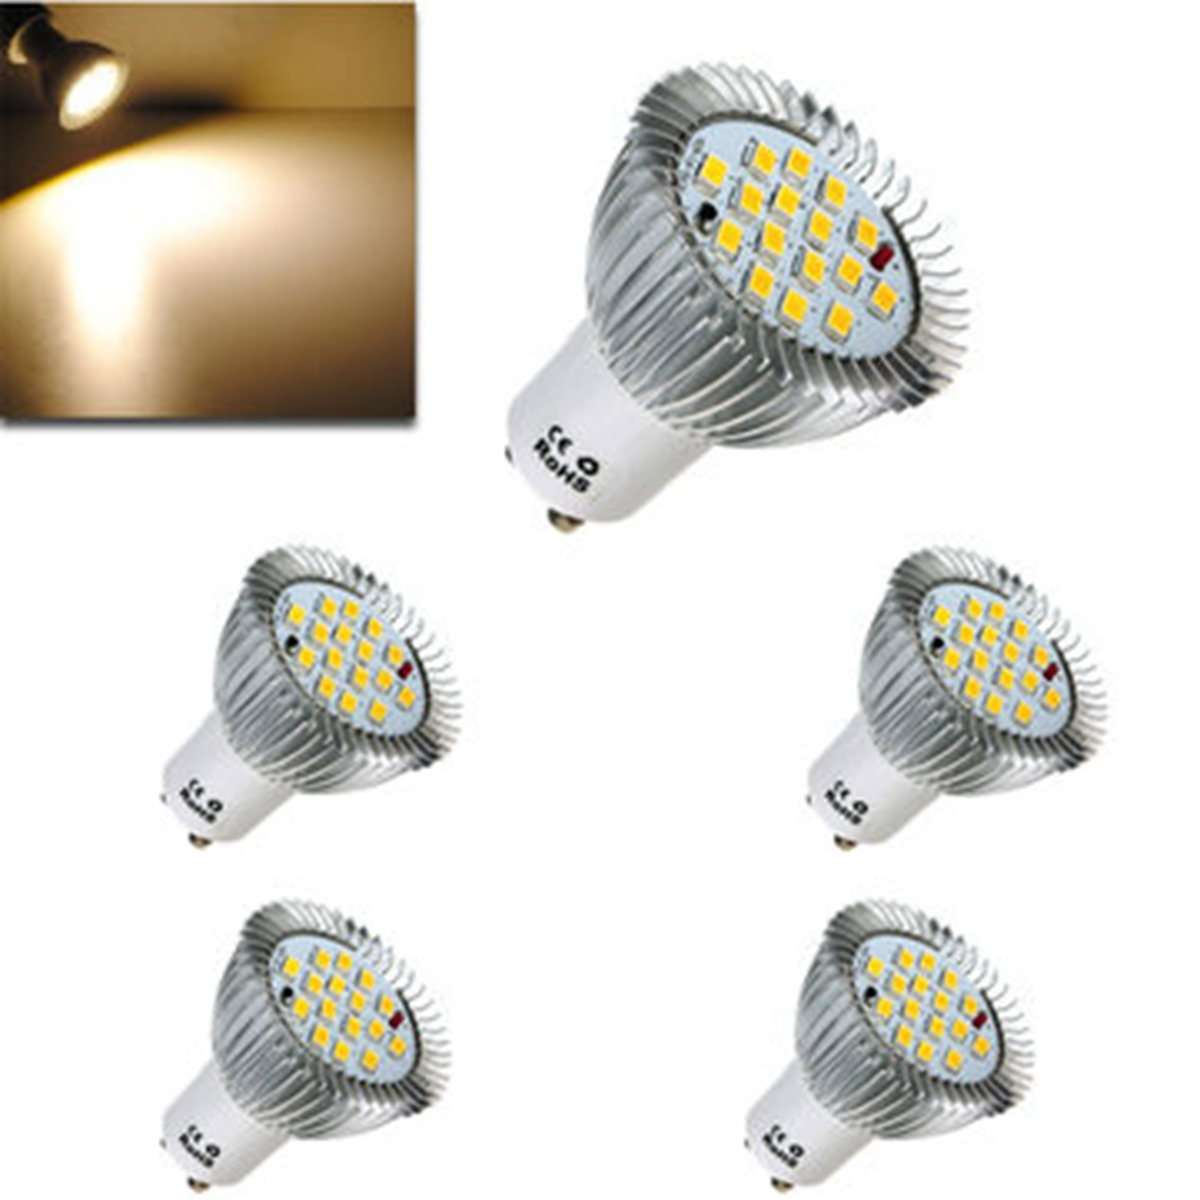 5x 6.4W LED Light Bulb GU10 16 LED 5630 SMD Energy Saving Lamp Bulb Spotlight Spot Lights Bulbs Warm White Lighting AC 85-265V